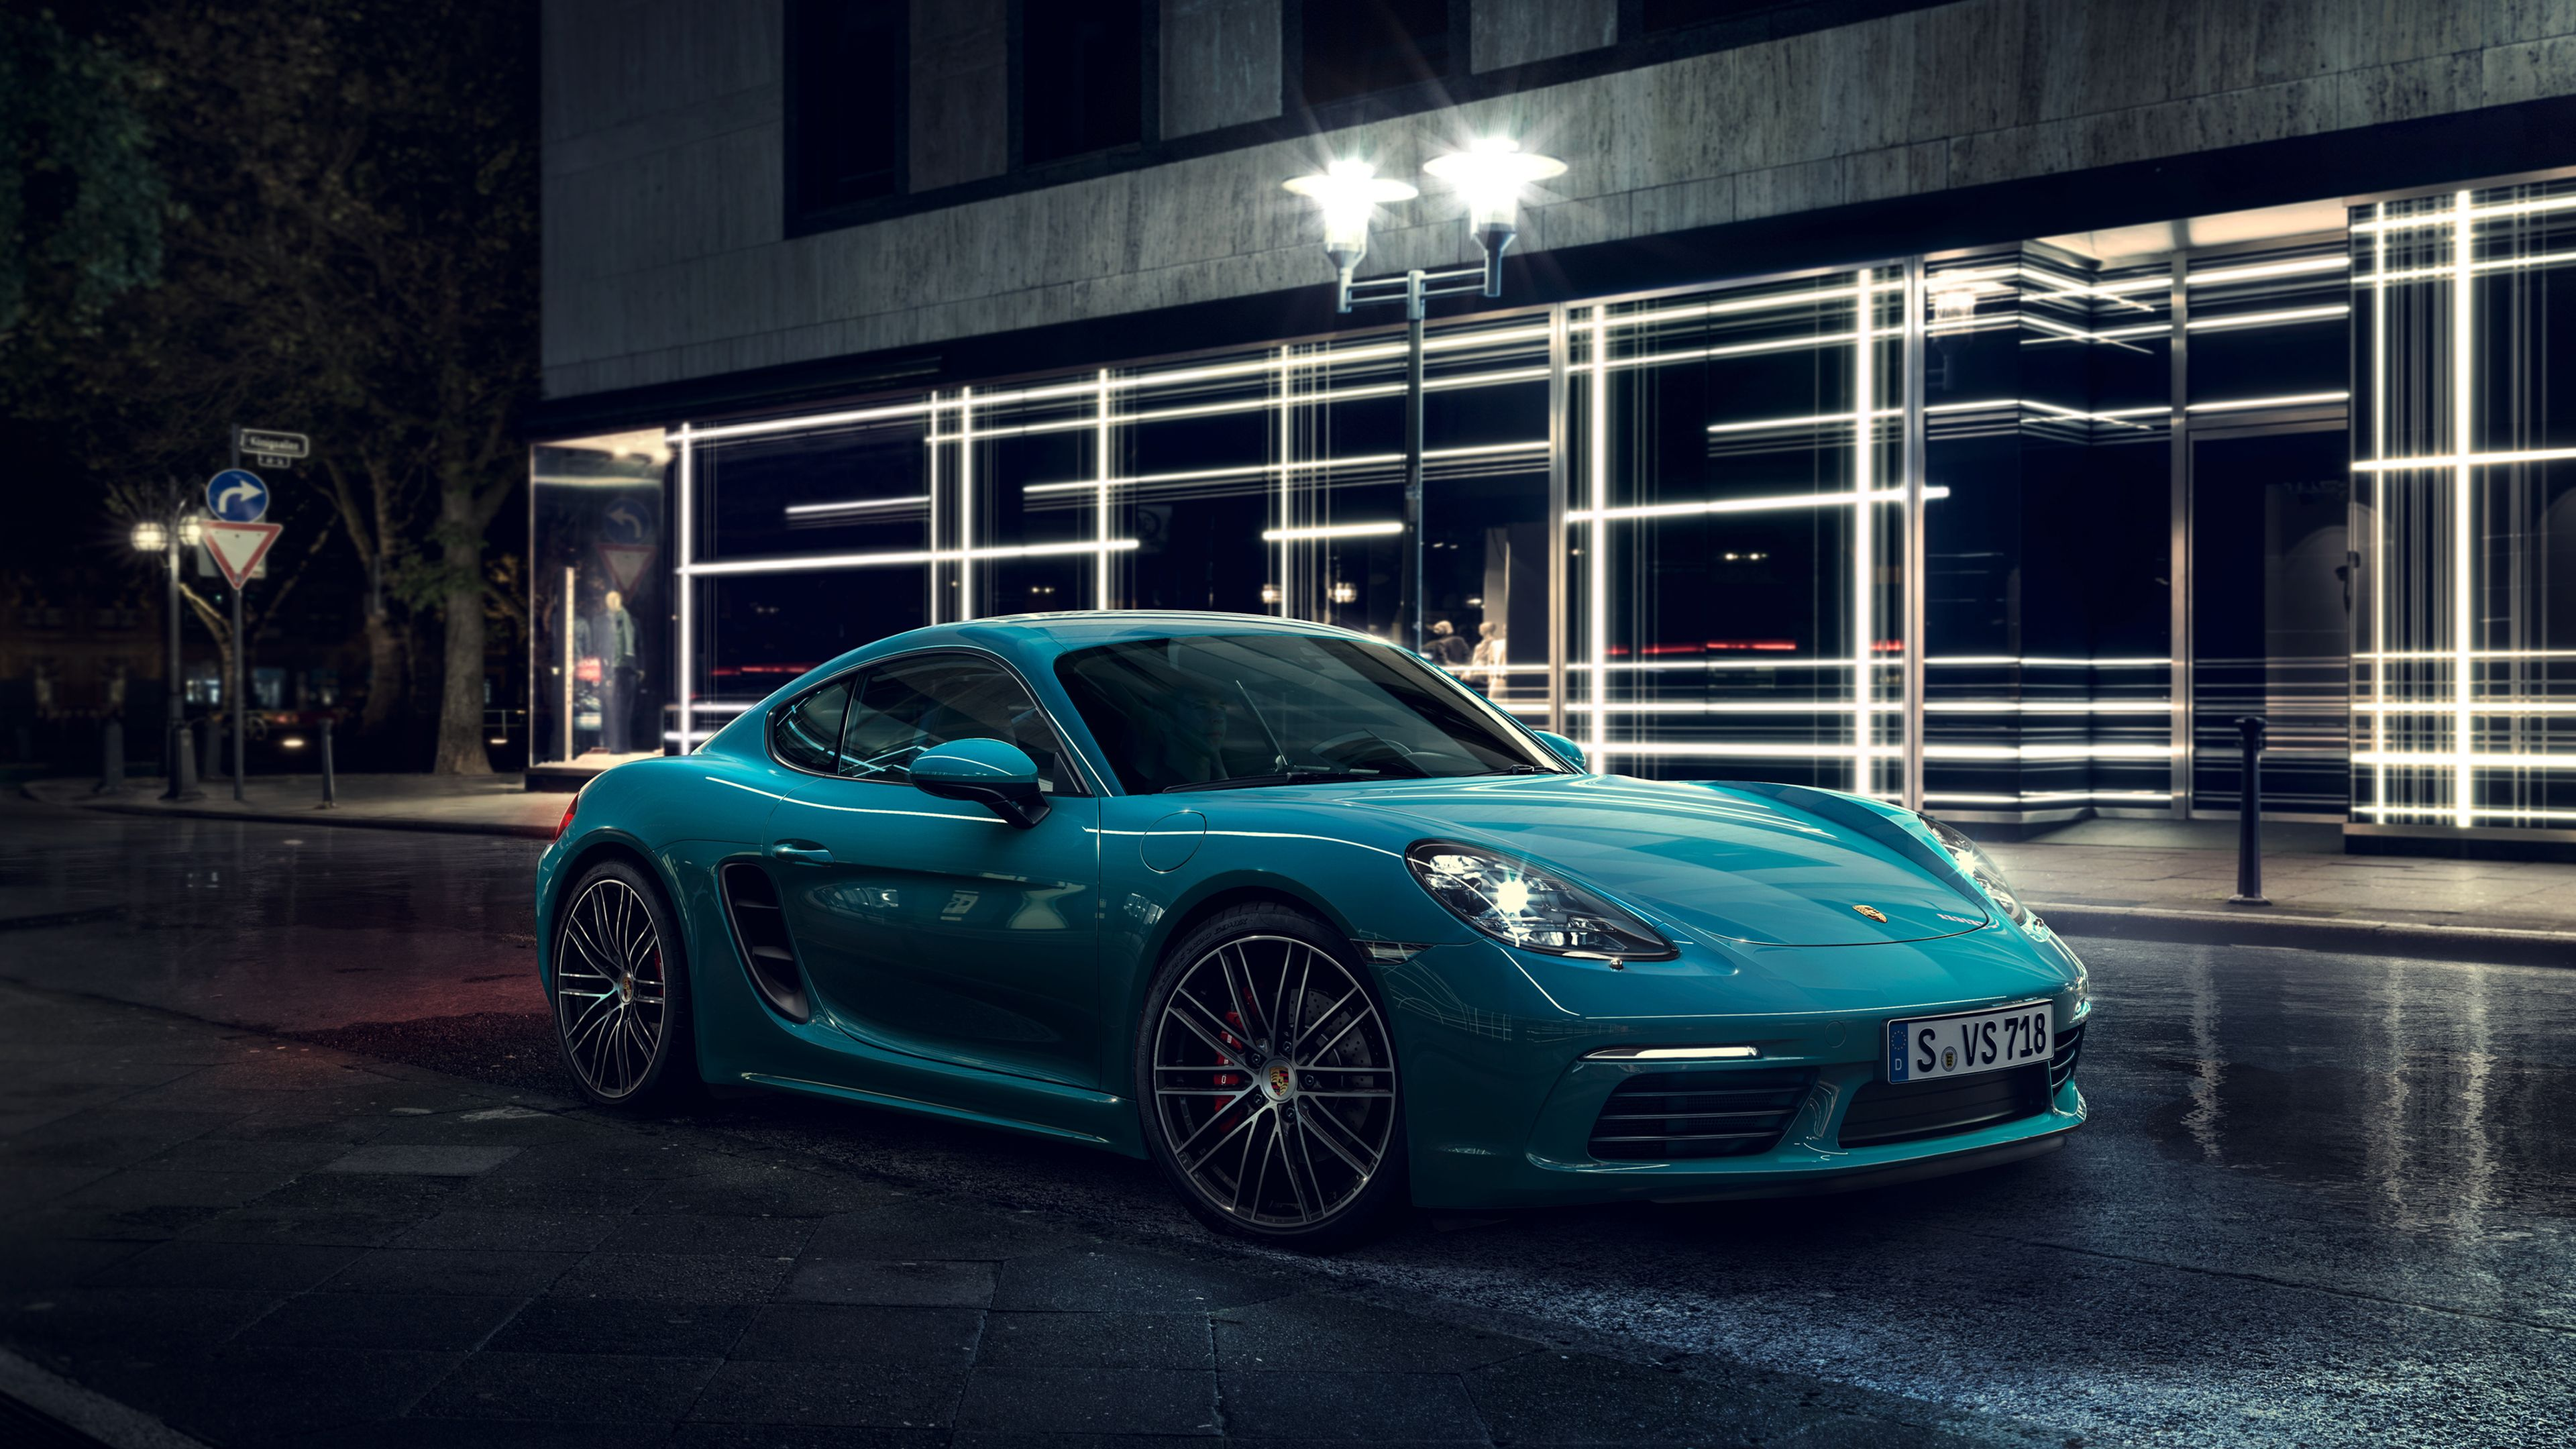 Wallpaper 4k Porsche Cayman S 4k Wallpapers Behance Wallpapers Cars Wallpapers Hd Wallpapers Porsche Cayman Wallpapers Porsche Wallpapers Fondos De Pantalla De Coches Fondos De Pantalla Carros Coches Deportivos